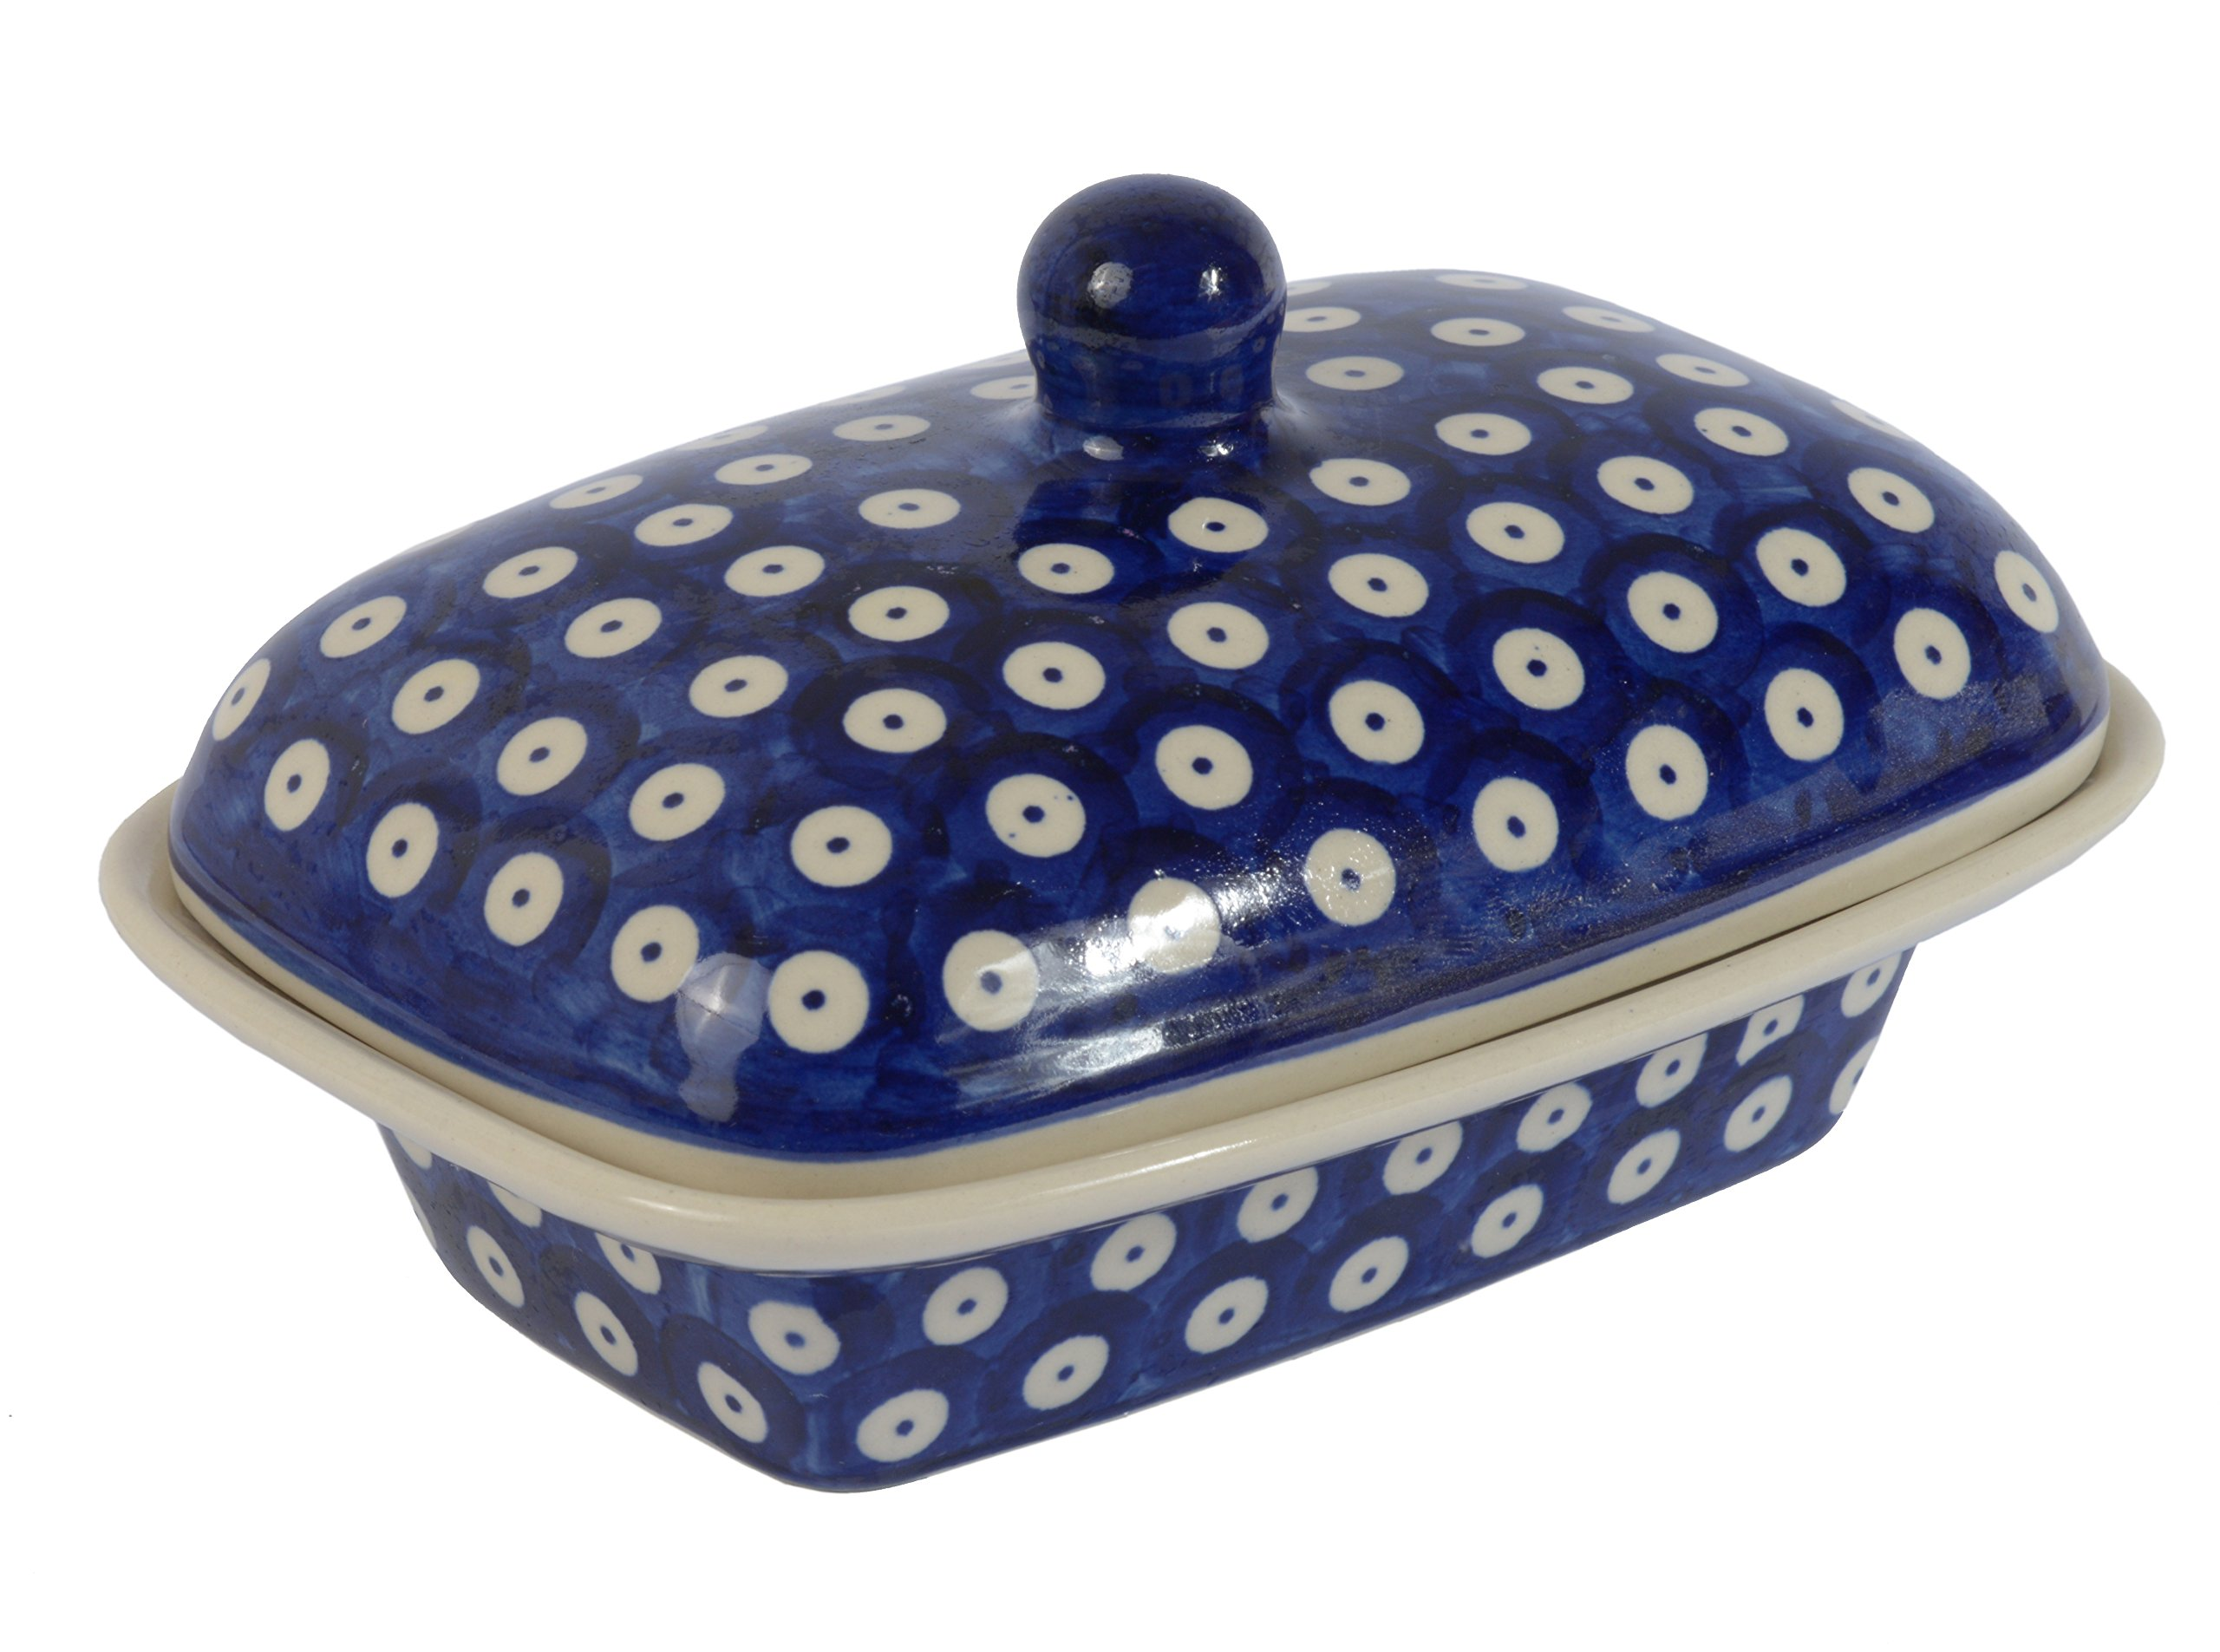 BCV Classic Boleslawiec, Polish Pottery Hand Painted Stoneware, Ceramic Butter Dish with lid 066 (T-001)